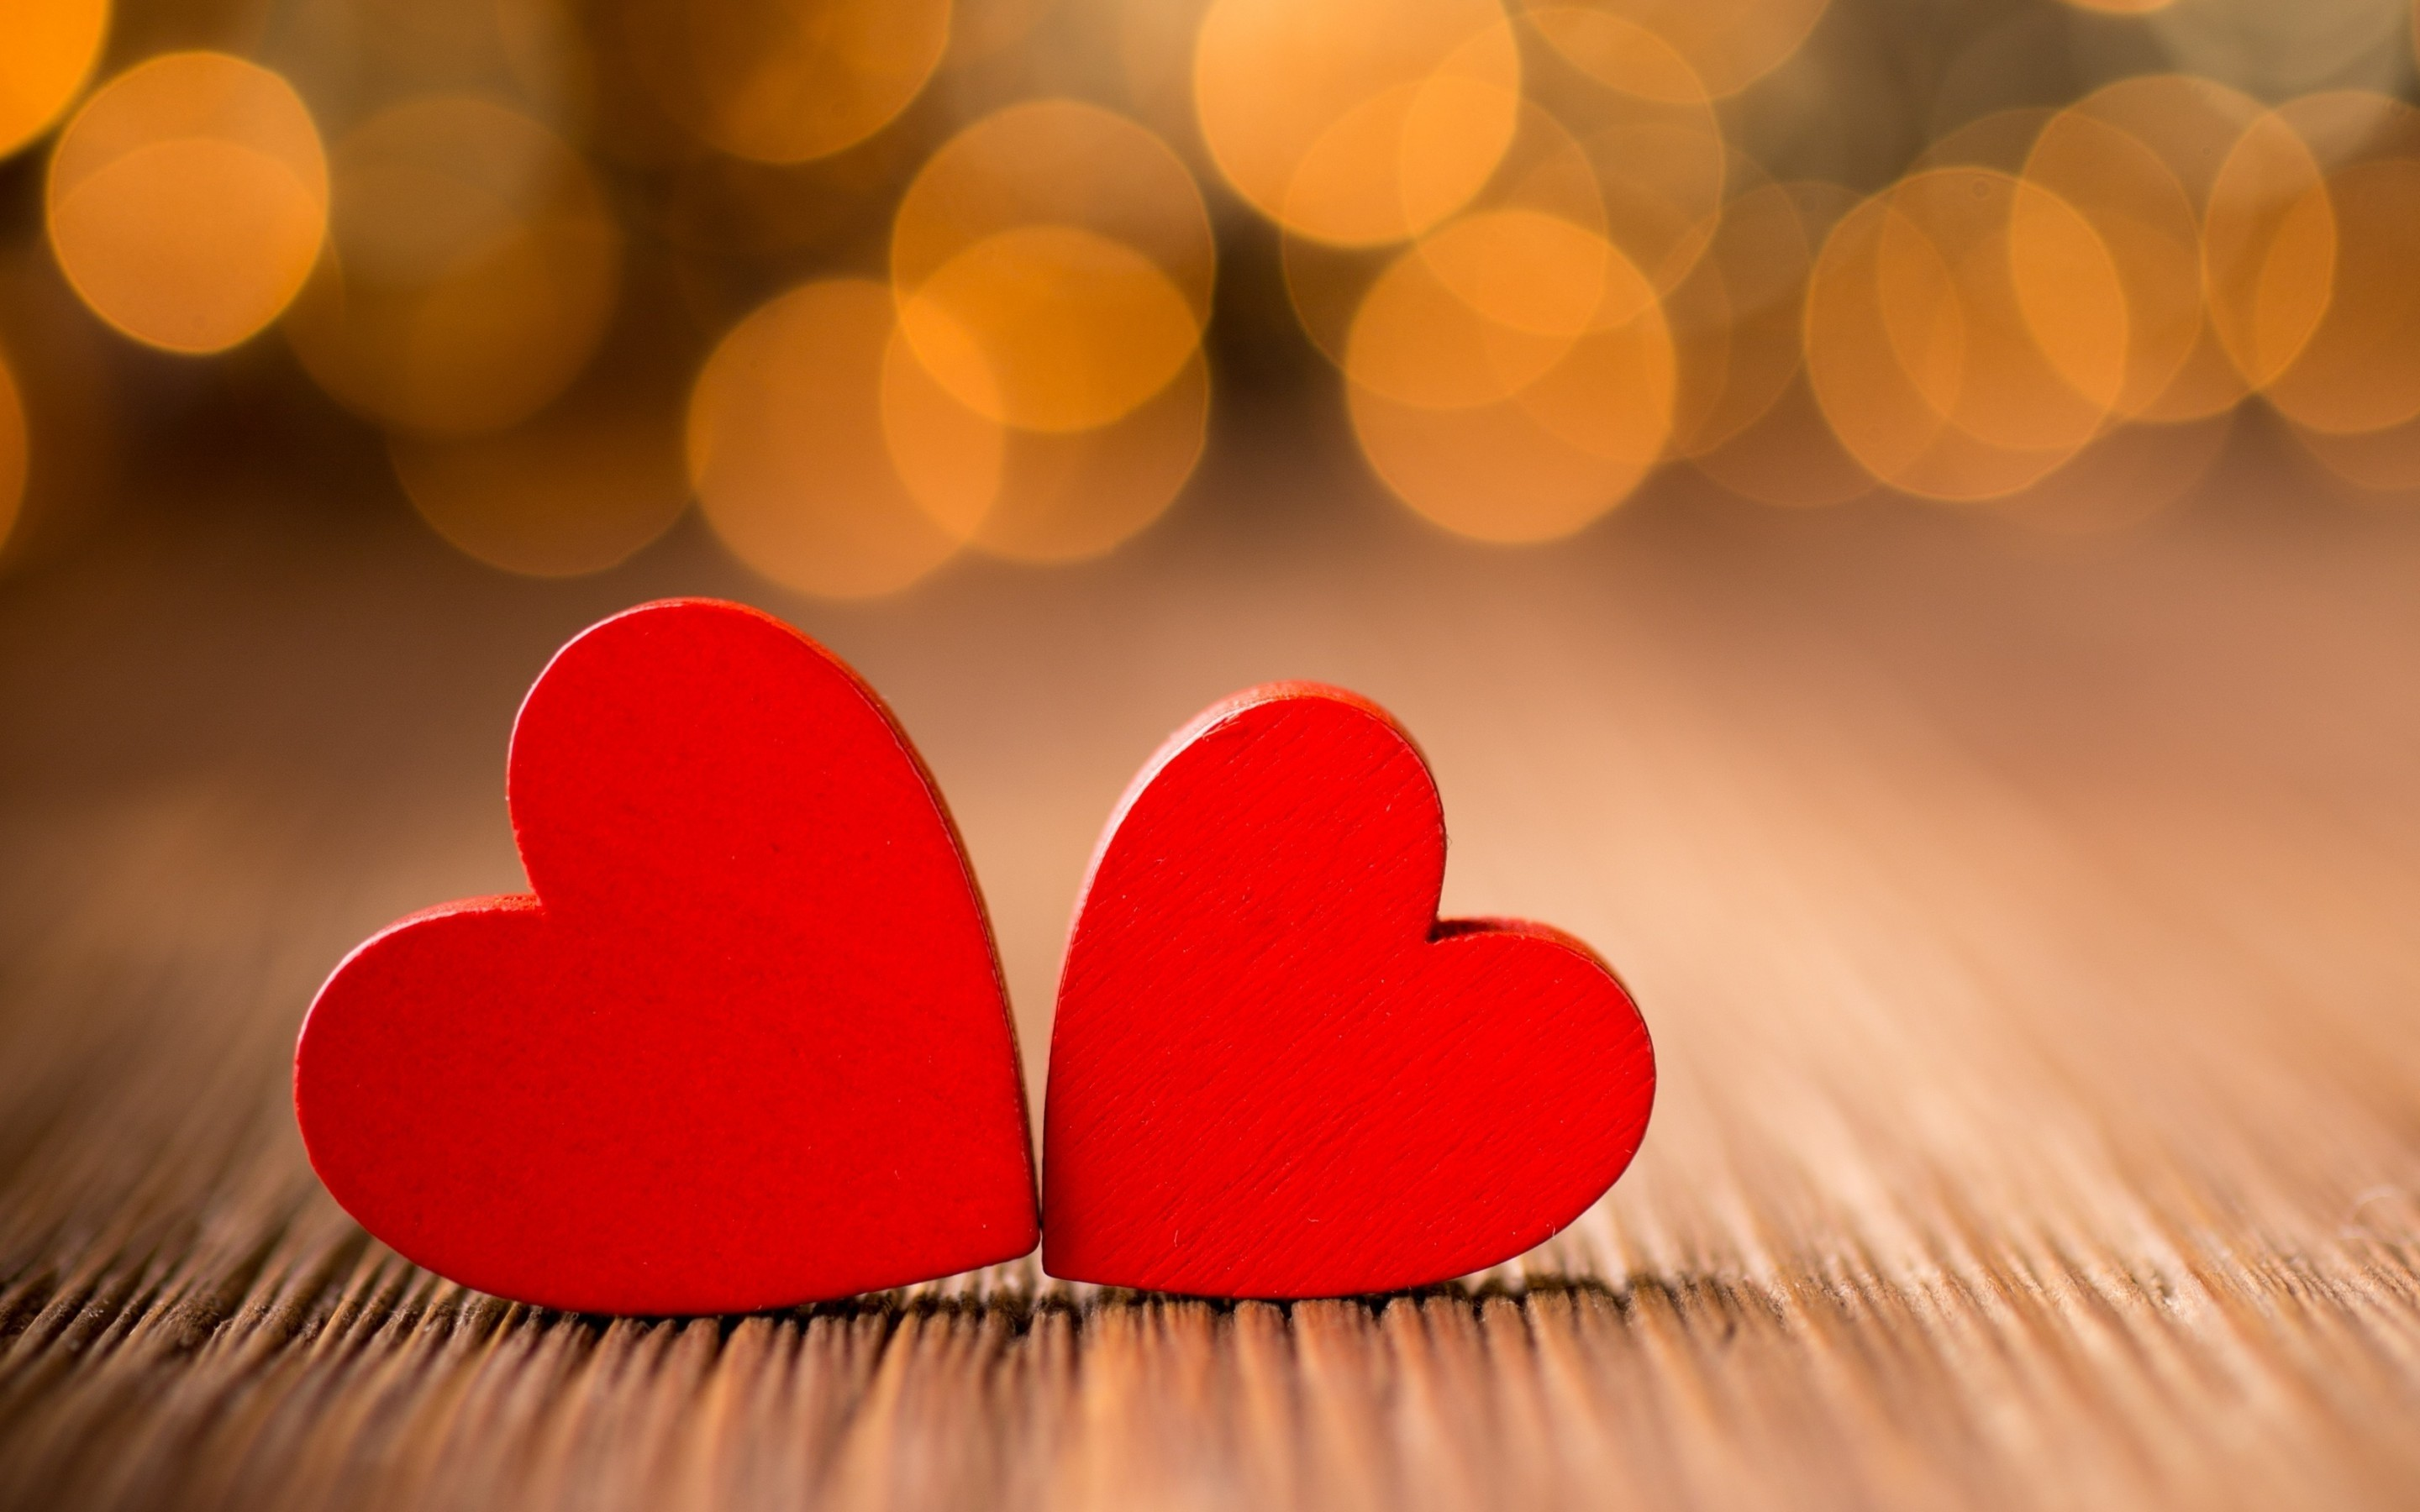 Beautiful Love Wallpapers Hd For Mobile : Beautiful Love Backgrounds (58+ images)